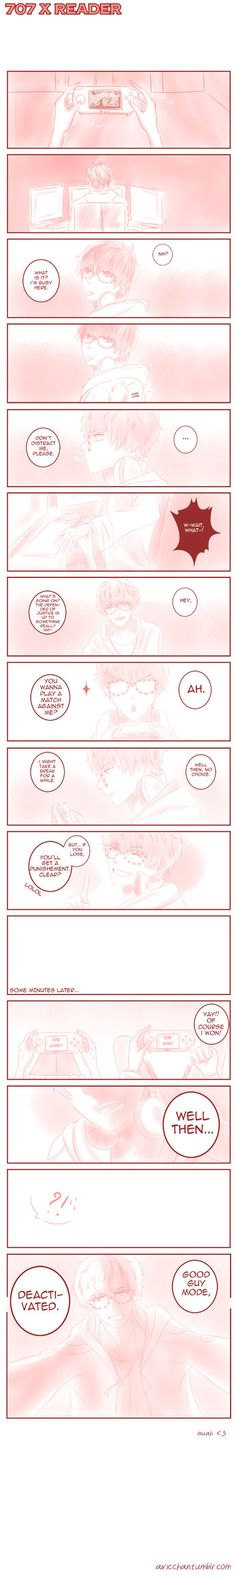 707 x Reader by Airicchan on DeviantArt